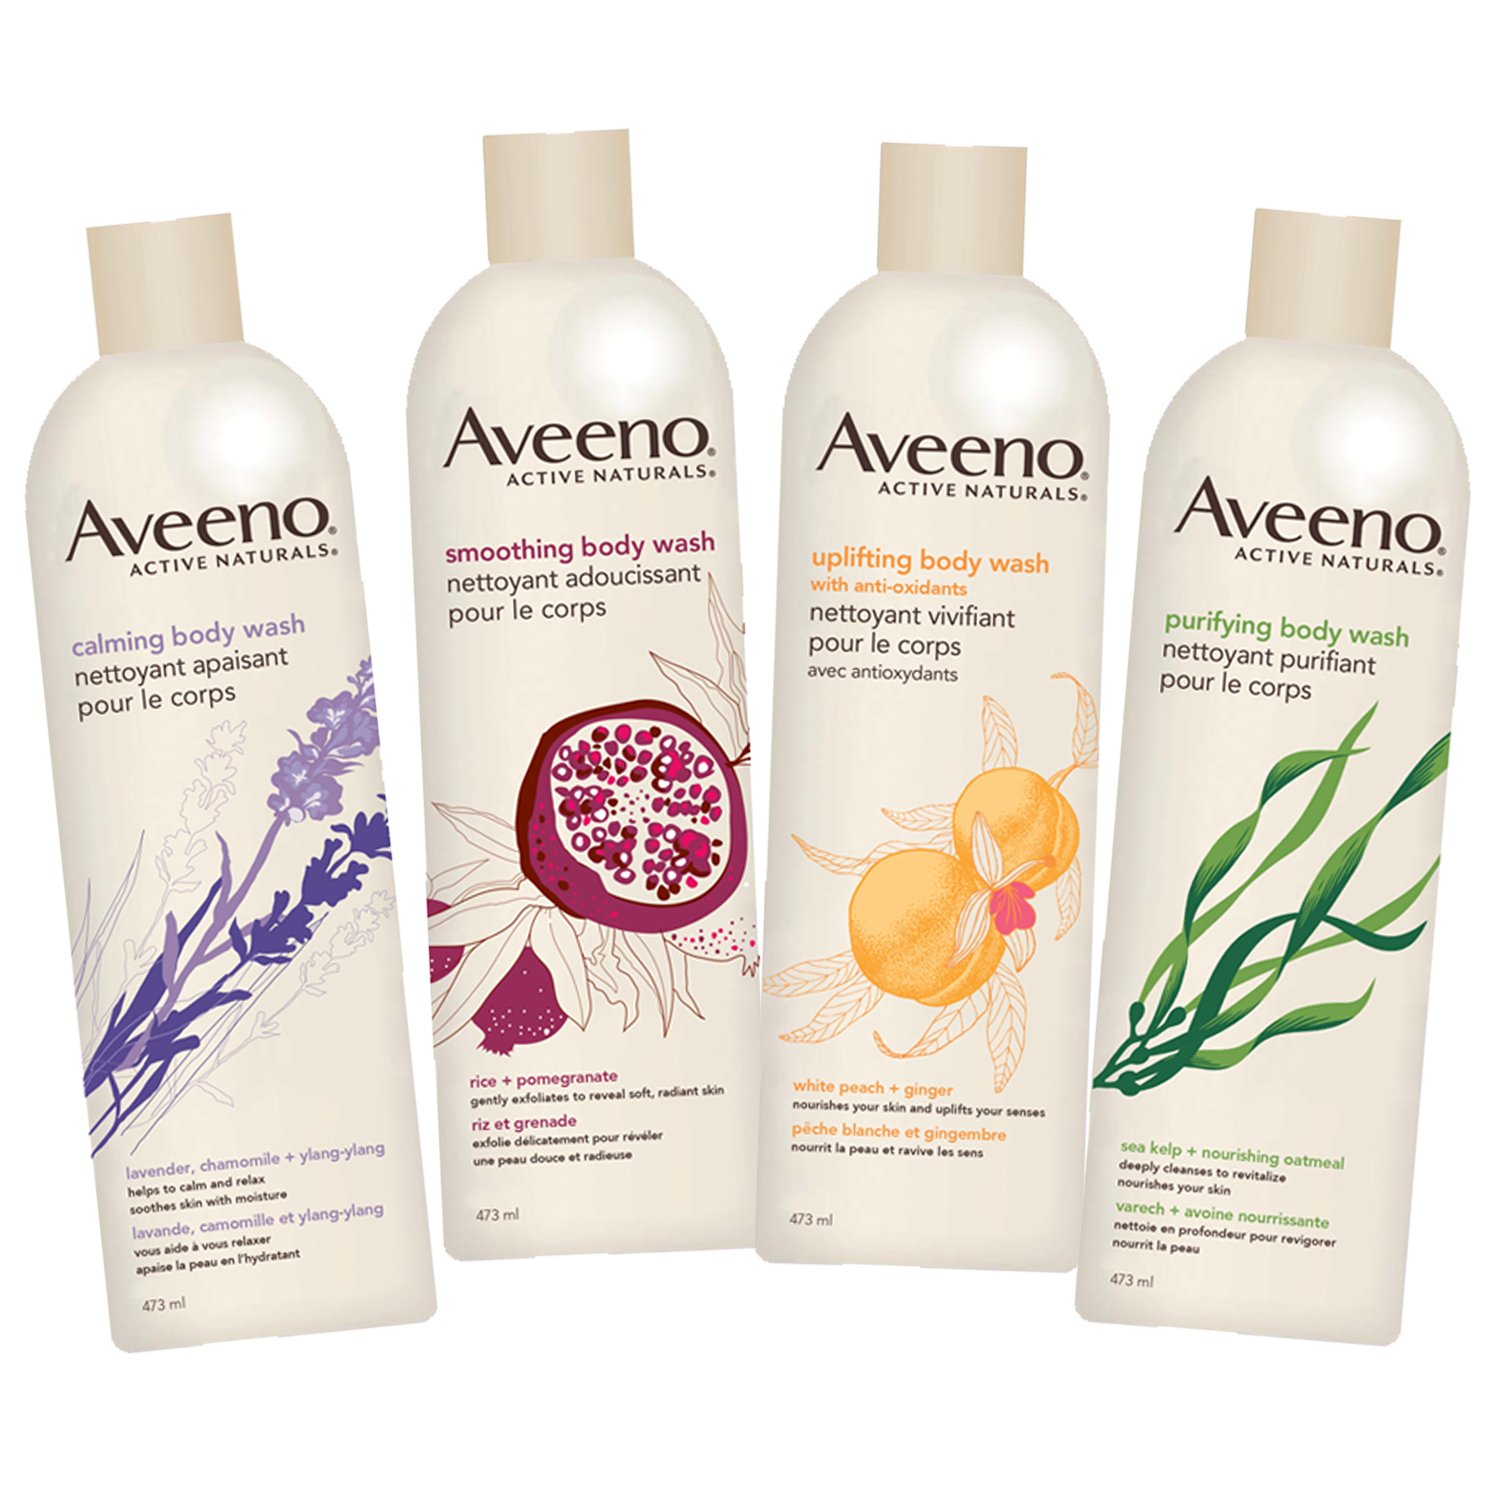 This is Aveeno - Clearly